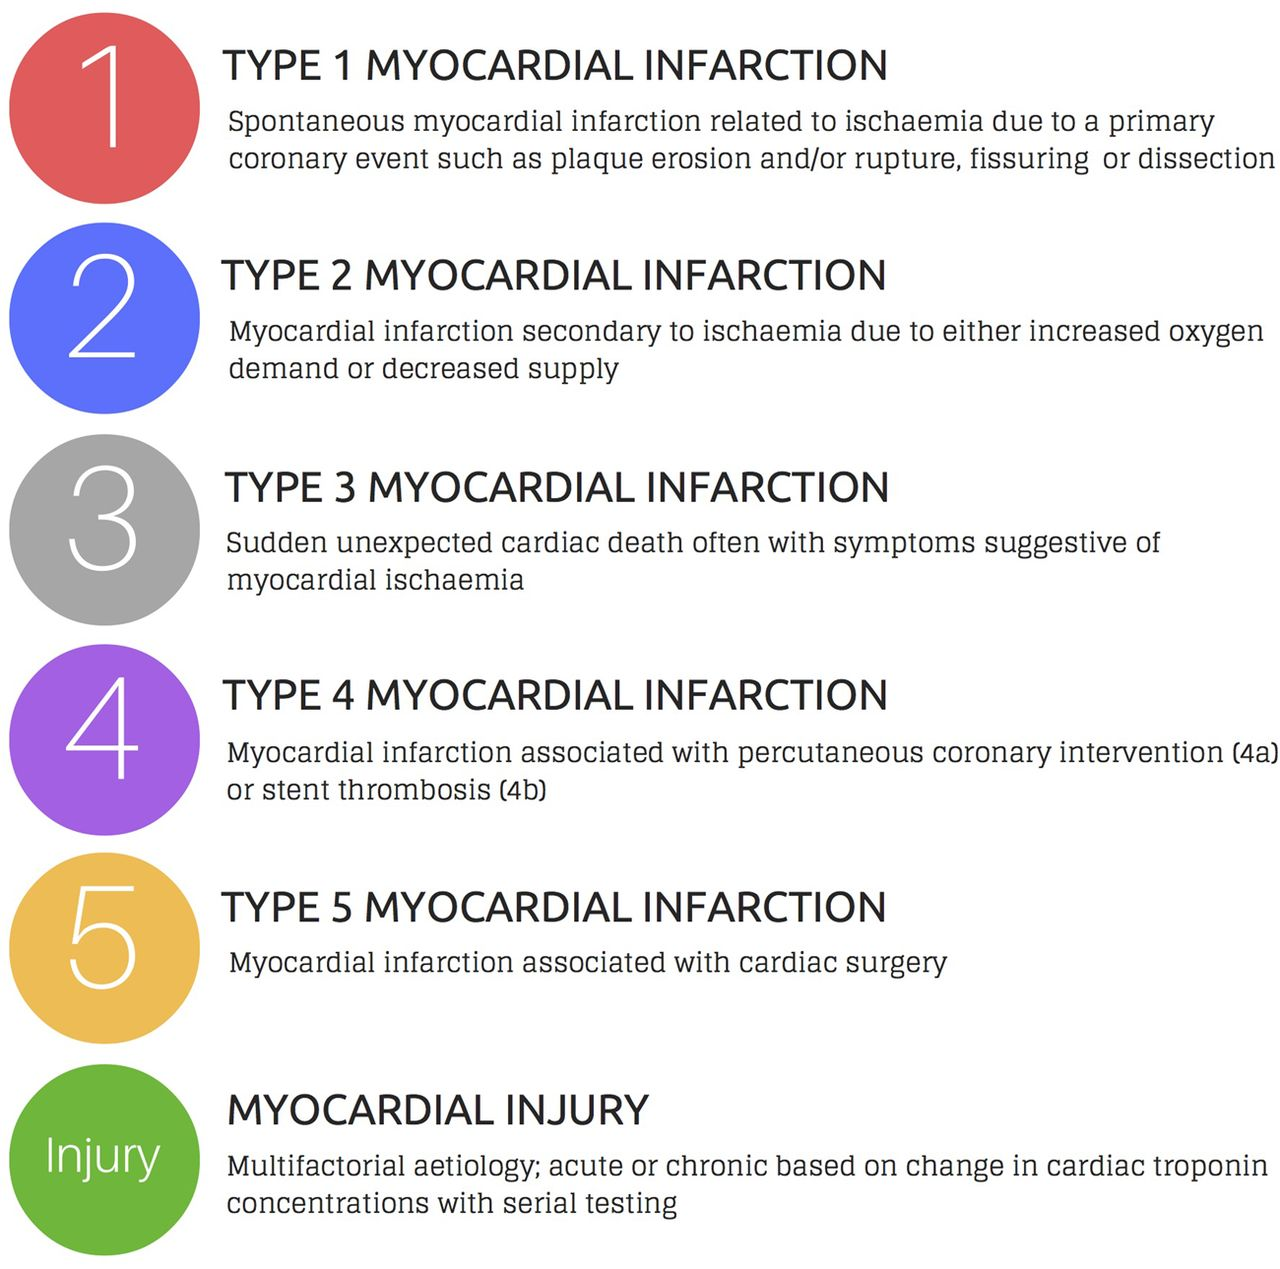 assessment and classification of patients with myocardial injury and infarction in clinical